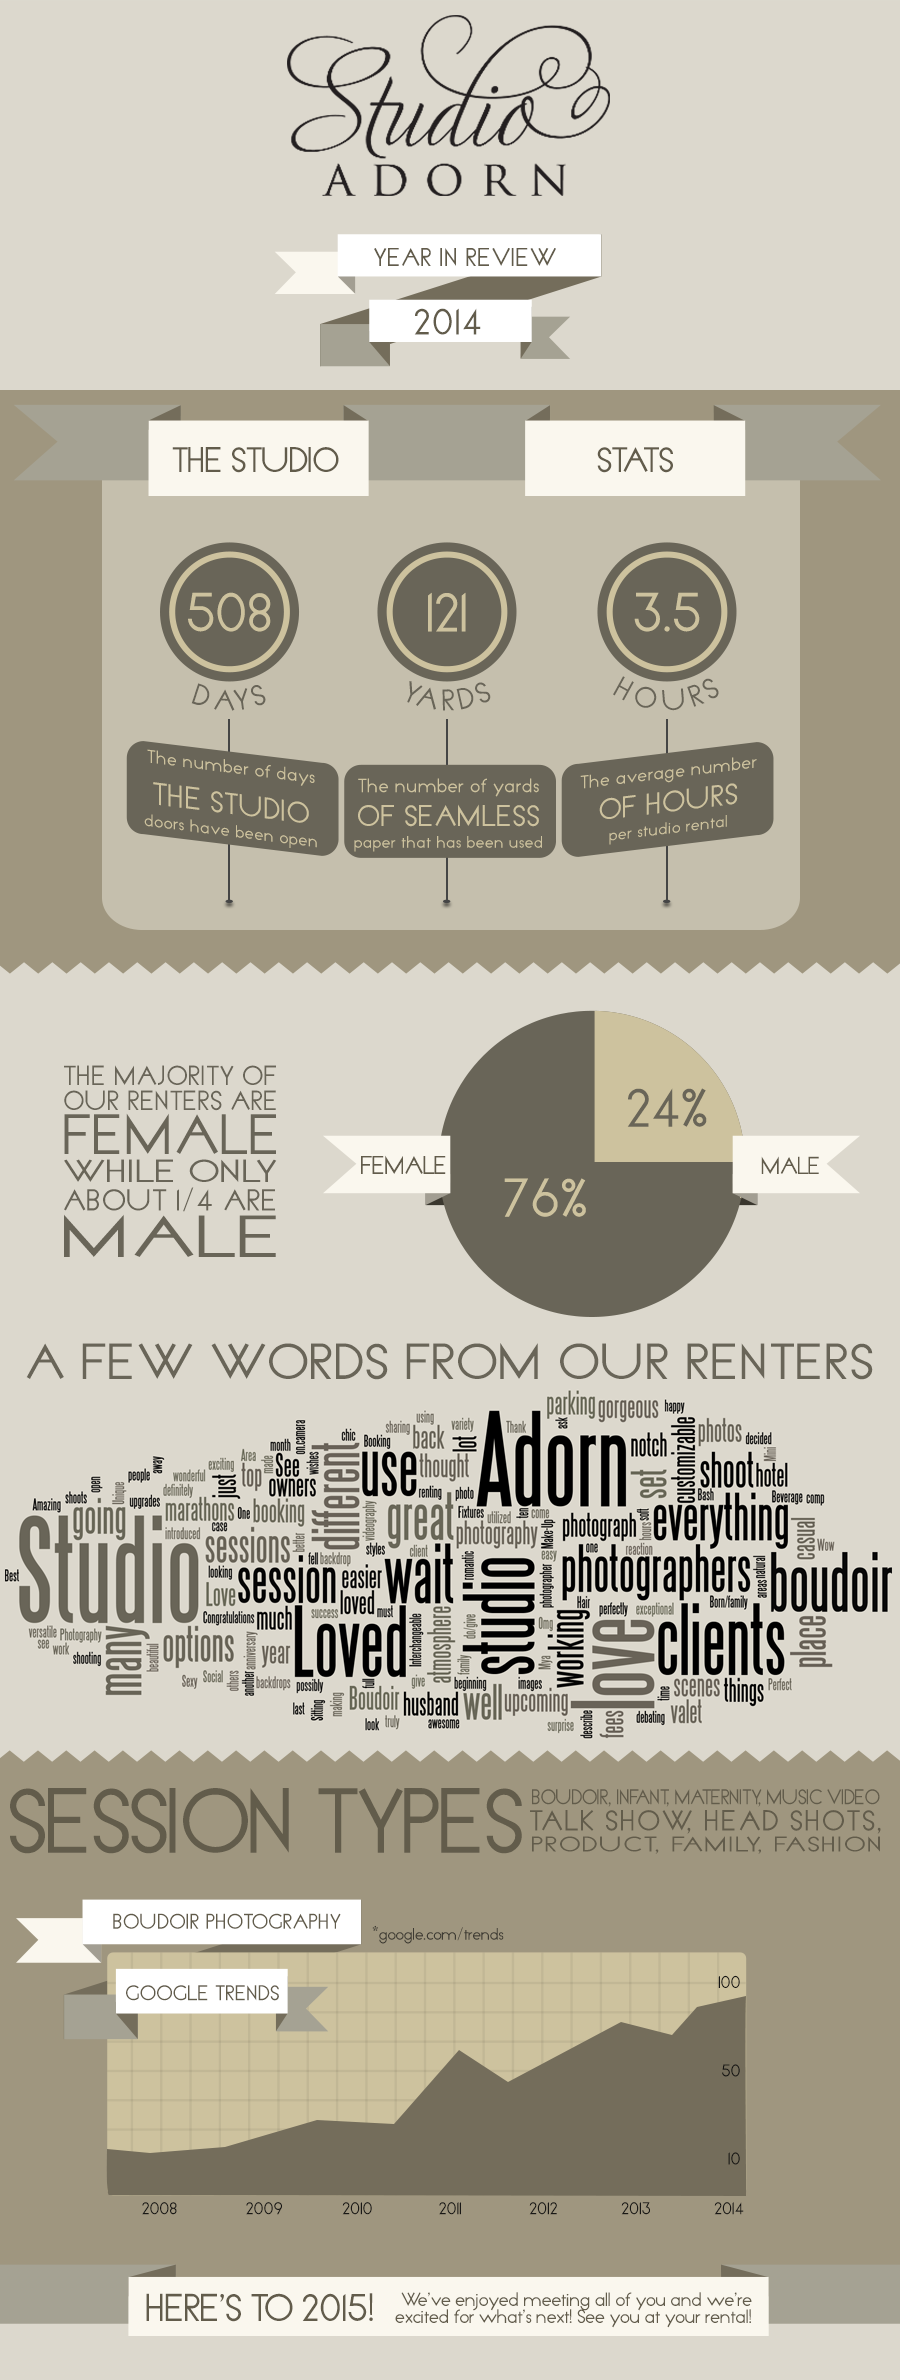 Studio-Adorn-Infographic-2014.png